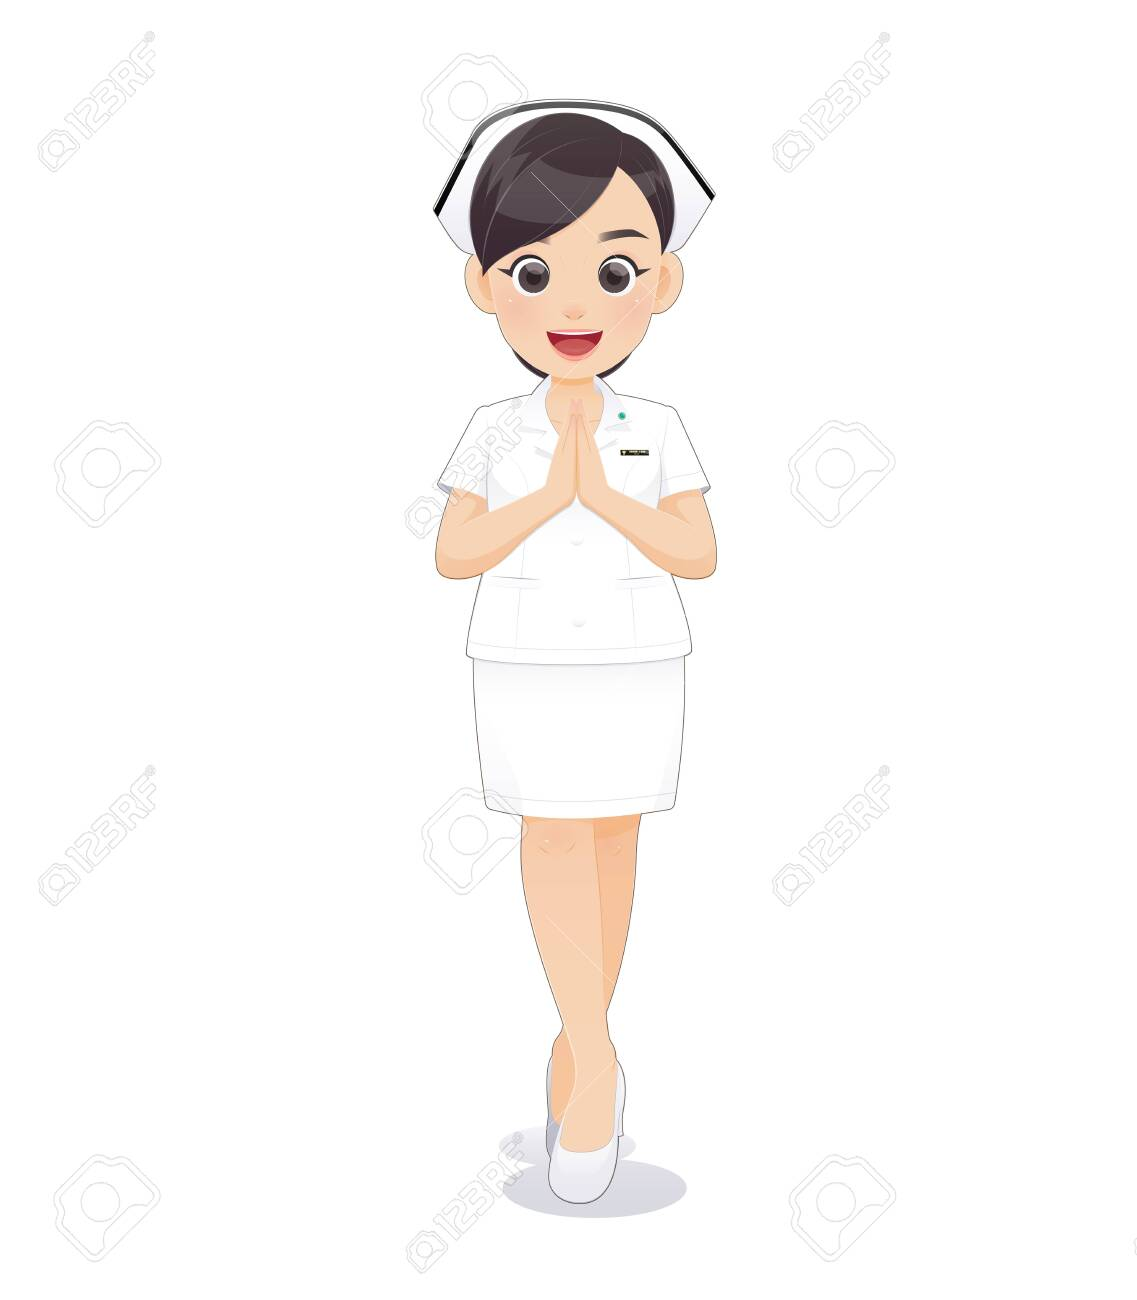 Cartoon Woman Doctor Or Nurse In White Uniform Holding A Clipboard Royalty Free Cliparts Vectors And Stock Illustration Image 124326735